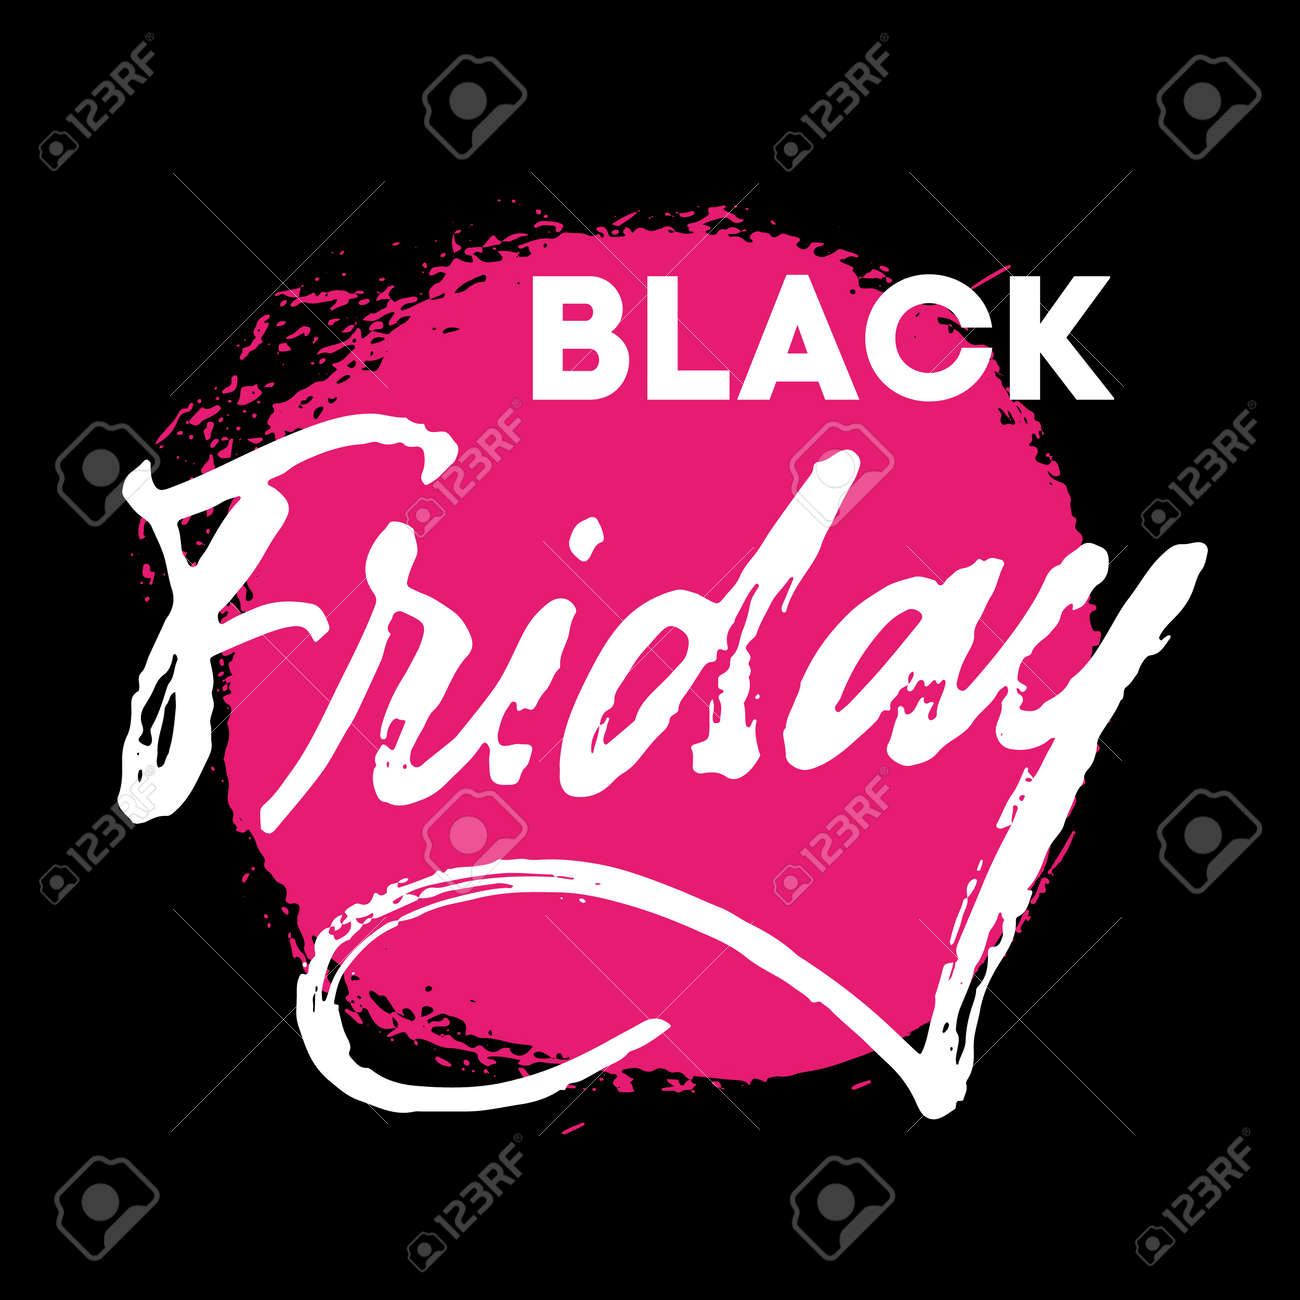 Black Friday hand written lettering sign withreal brush texture. White letters on black background with neon pink textured stain. Advertising concept for sale season and discount banner. Promotional text for social media, banners, posters, tags, stickers or fliers. - 158668942